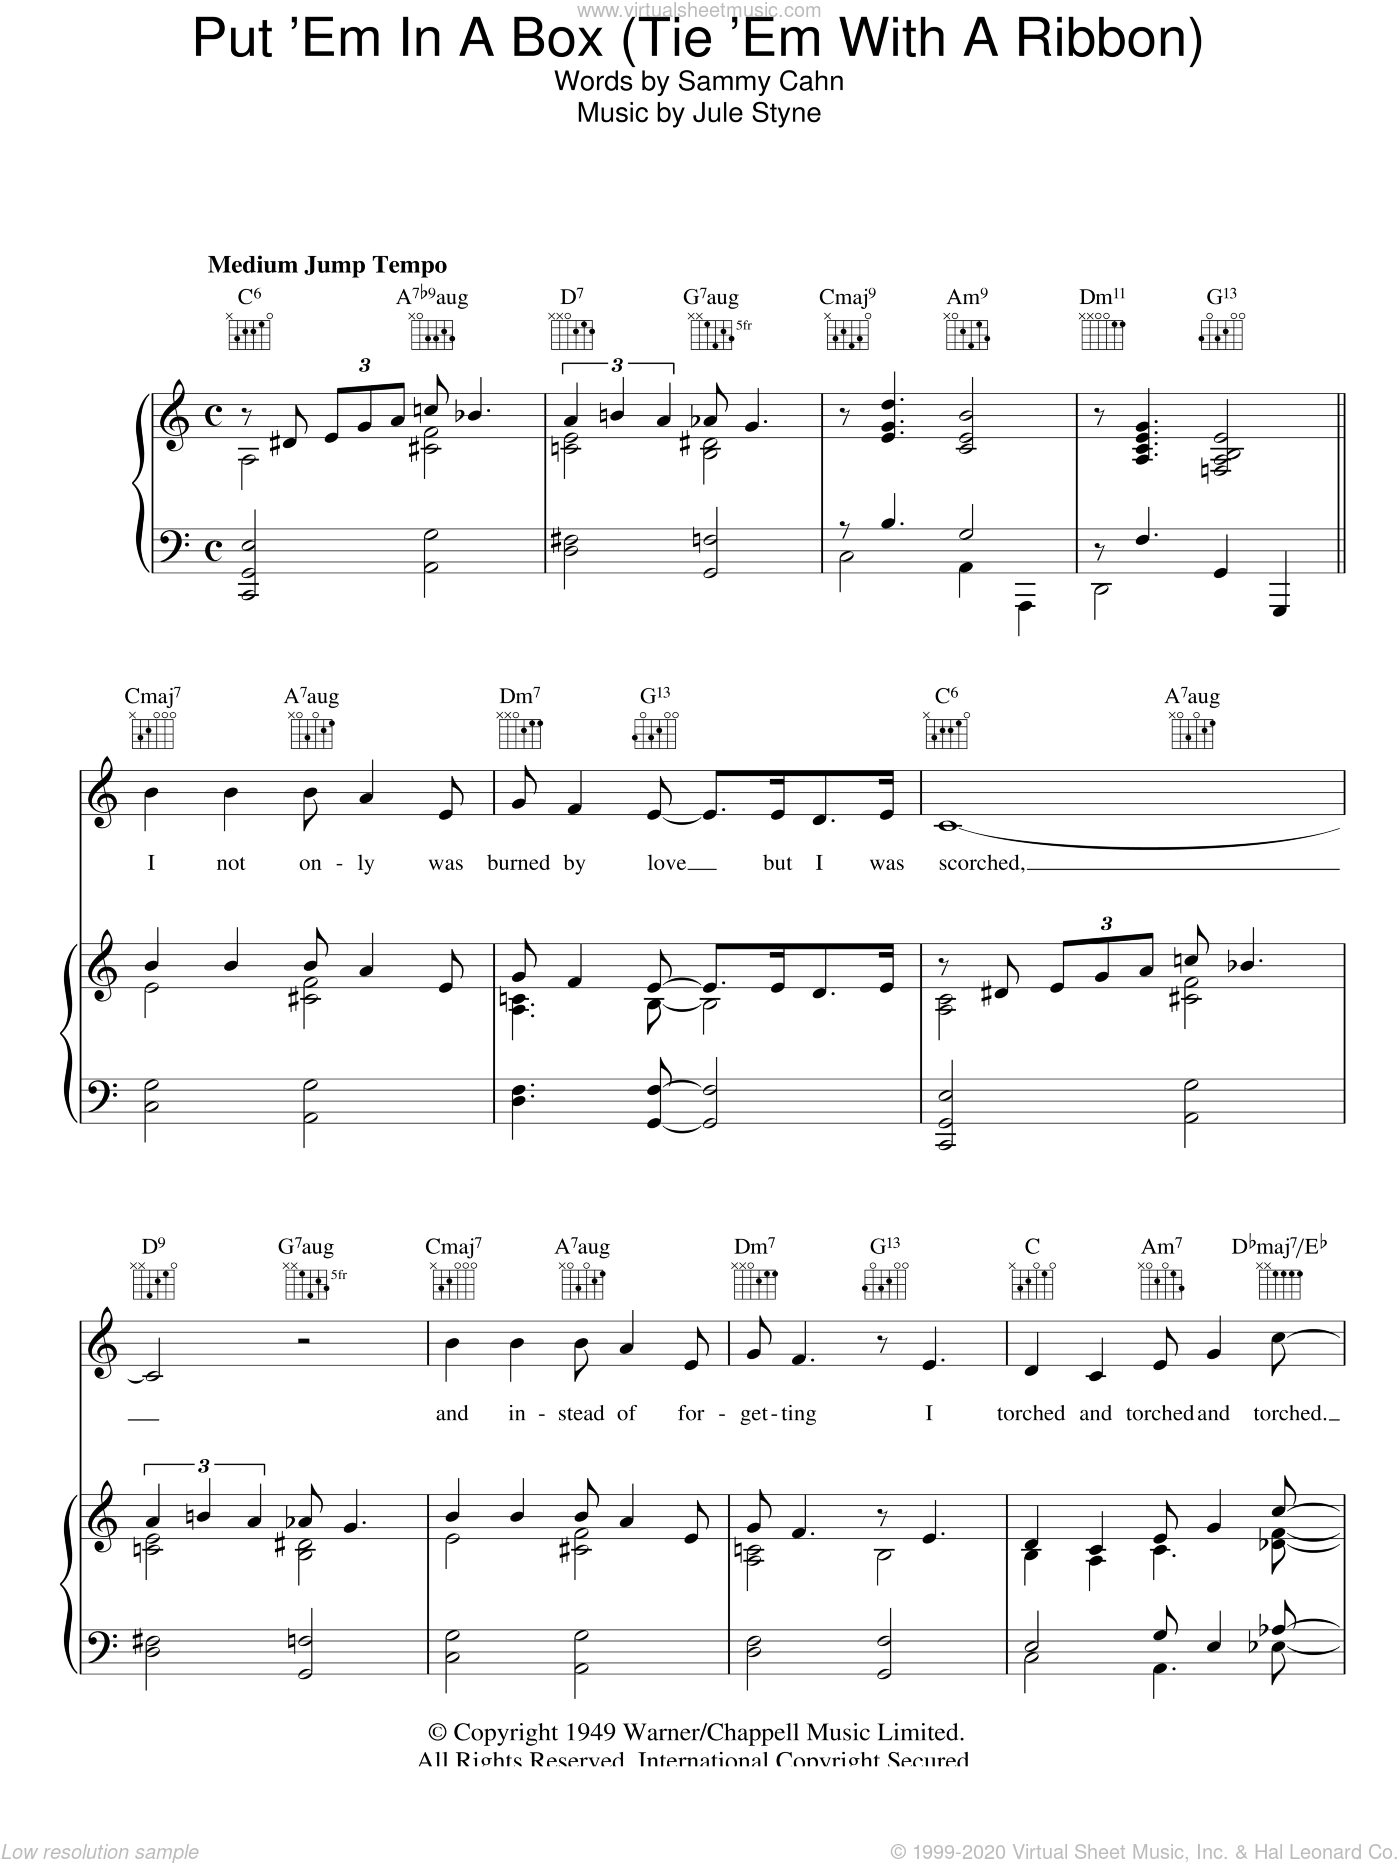 Put 'Em In A Box (Tie 'Em With A Ribbon) sheet music for voice, piano or guitar by Sammy Cahn